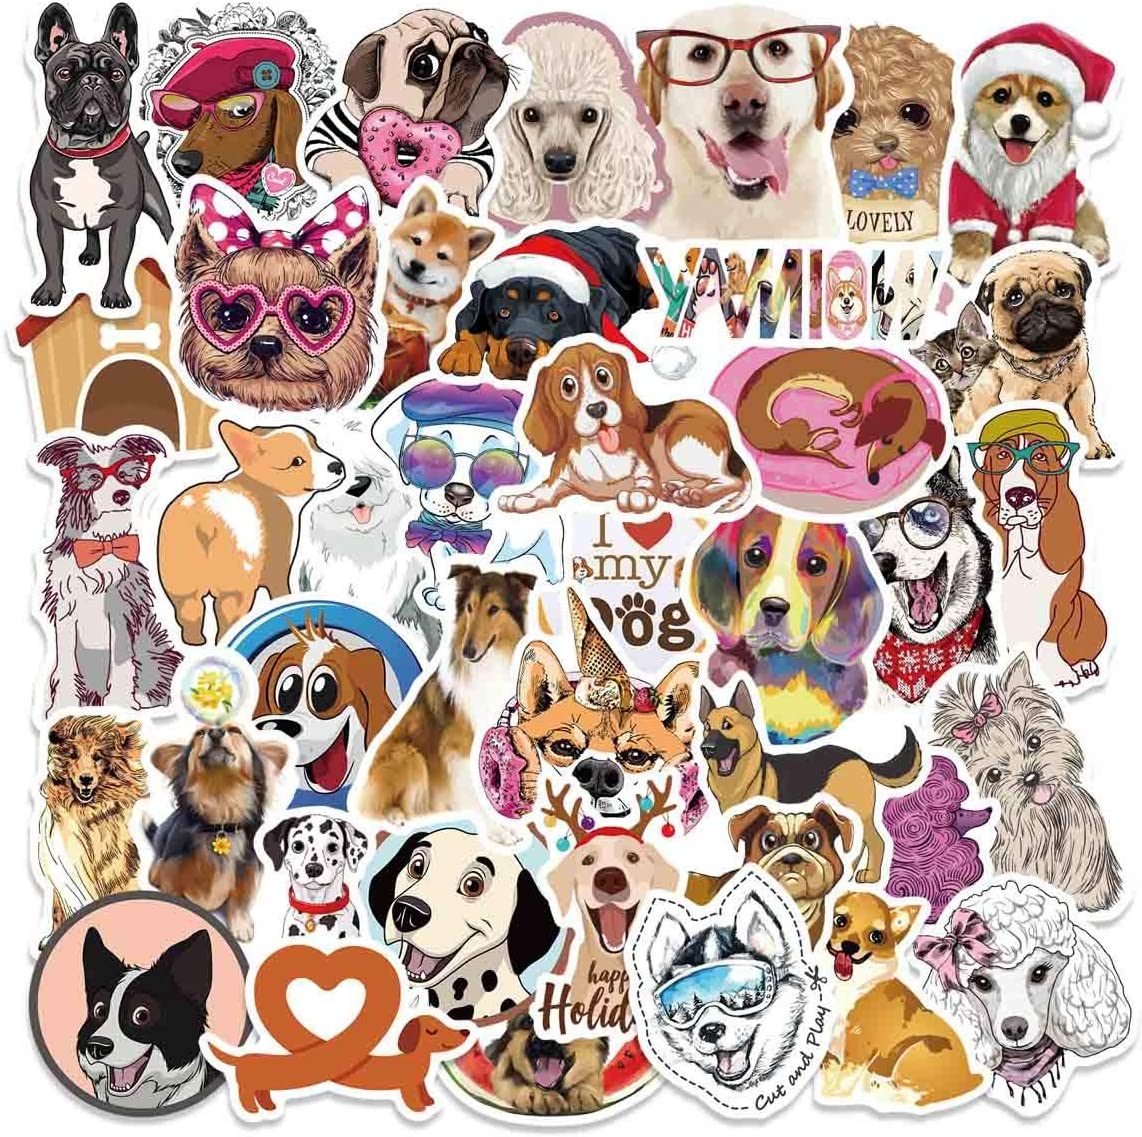 80pcs Cute Dog Stickers for Water Bottle,Dog Gifts for Adults Teens Girls Boys,Vinyl Waterproof Puppy Stickers and Decals for Laptop Scrapbook Skateboard Bicycle Car Phone,Funny Animal